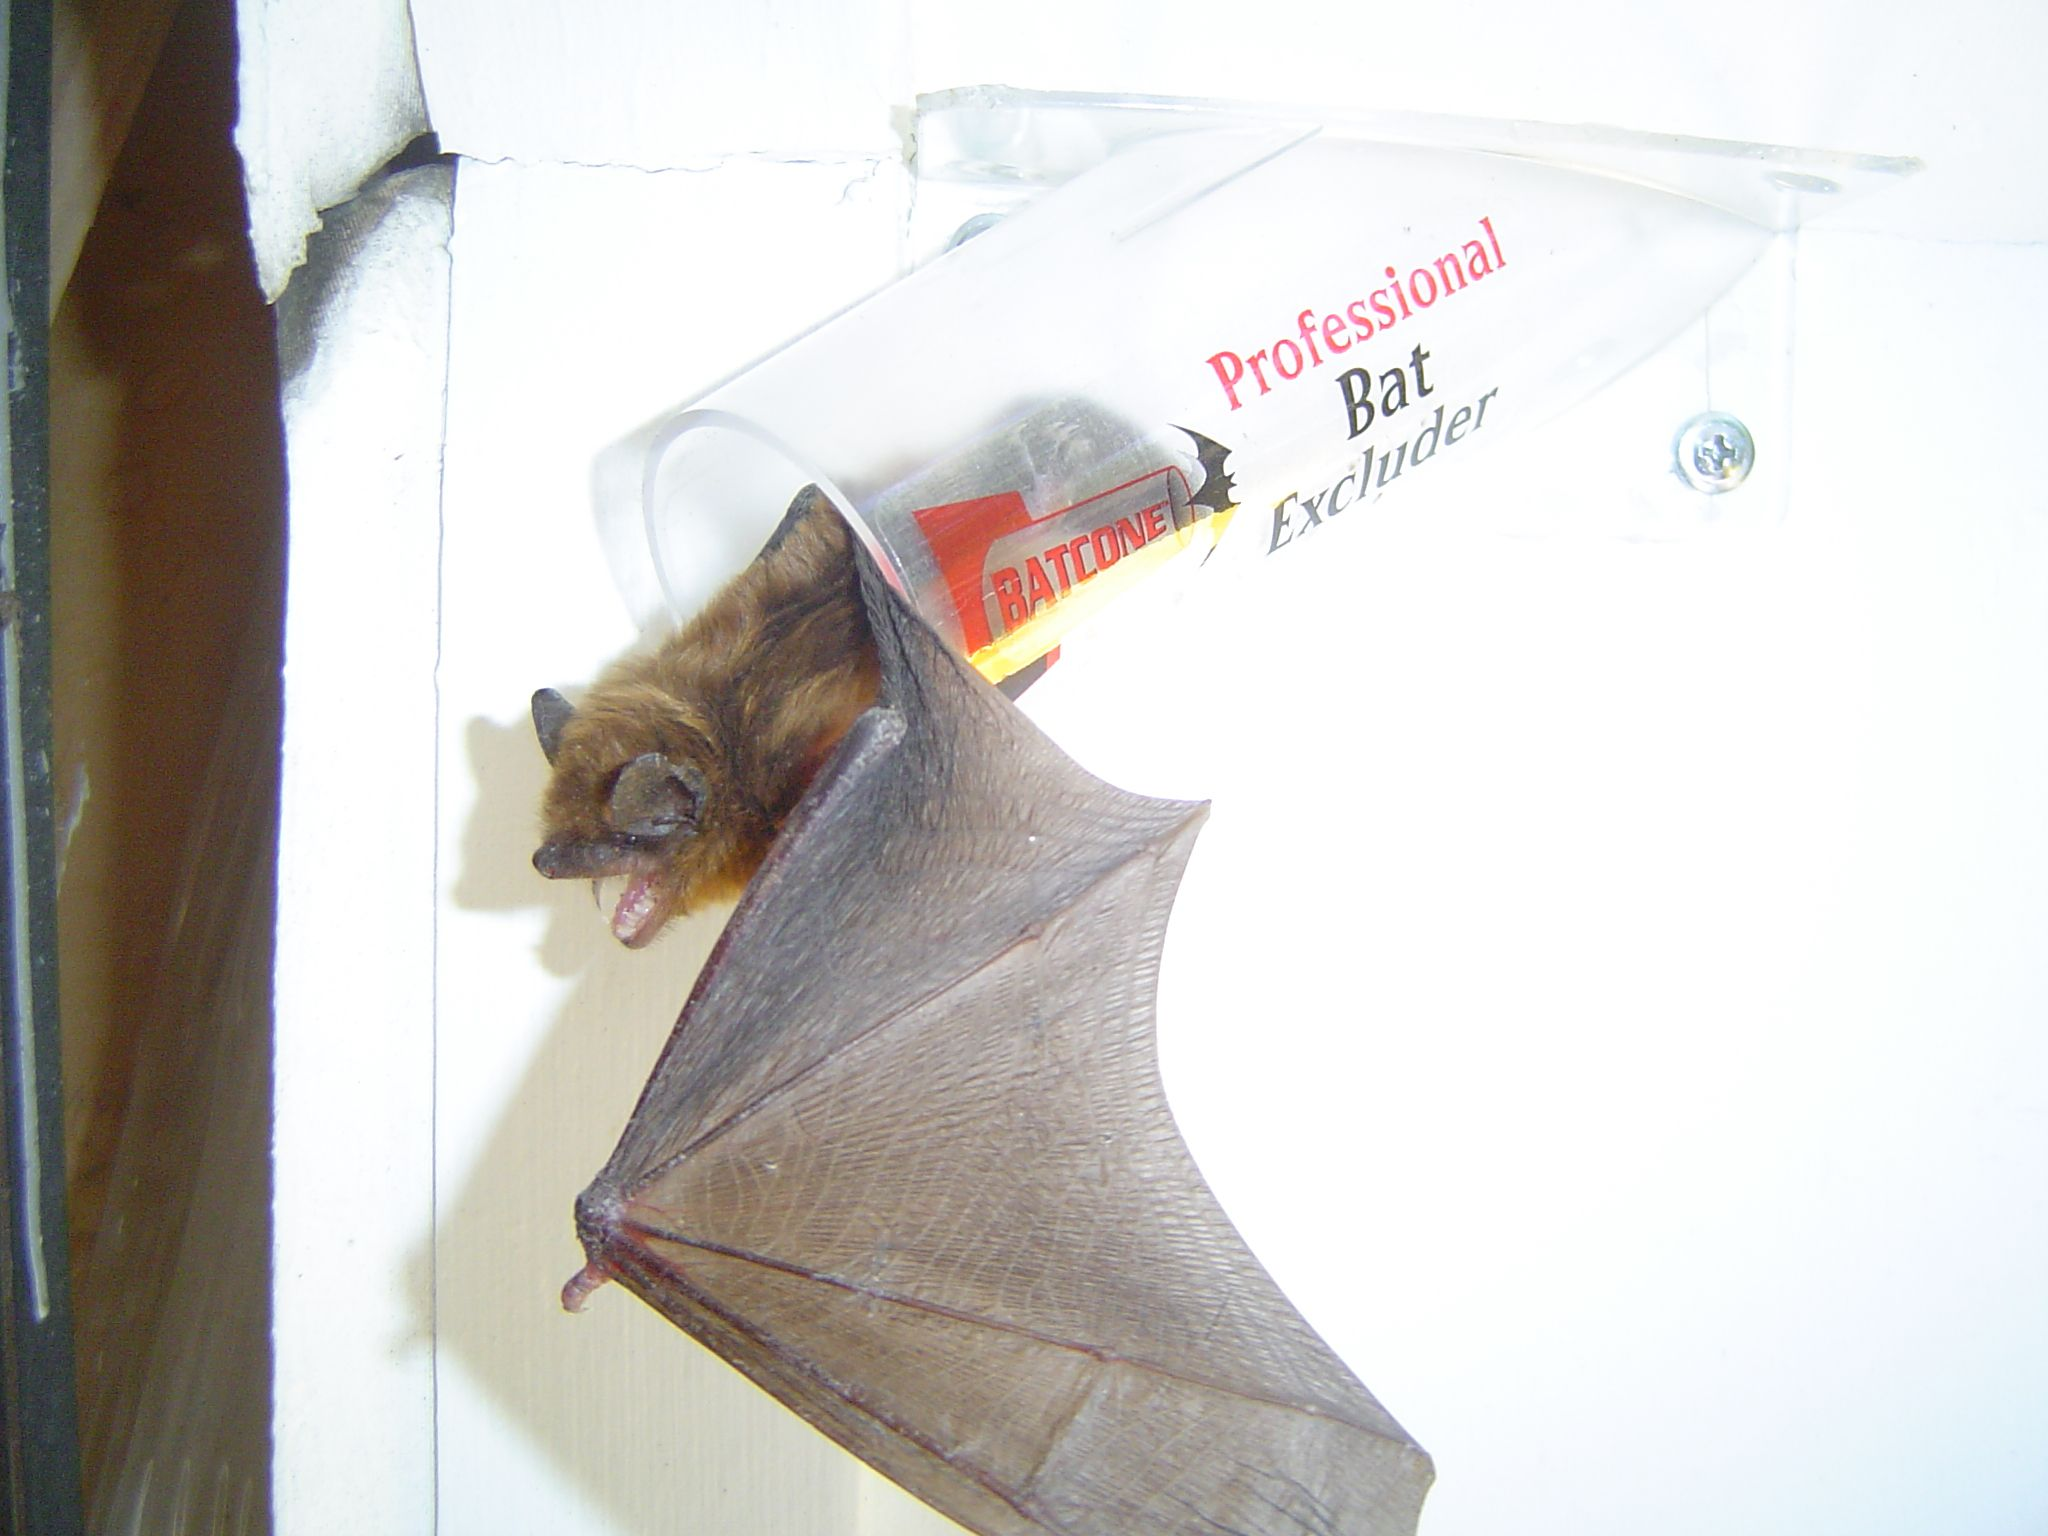 If you see a bat in your home, DON'T TOUCH IT! Give us a